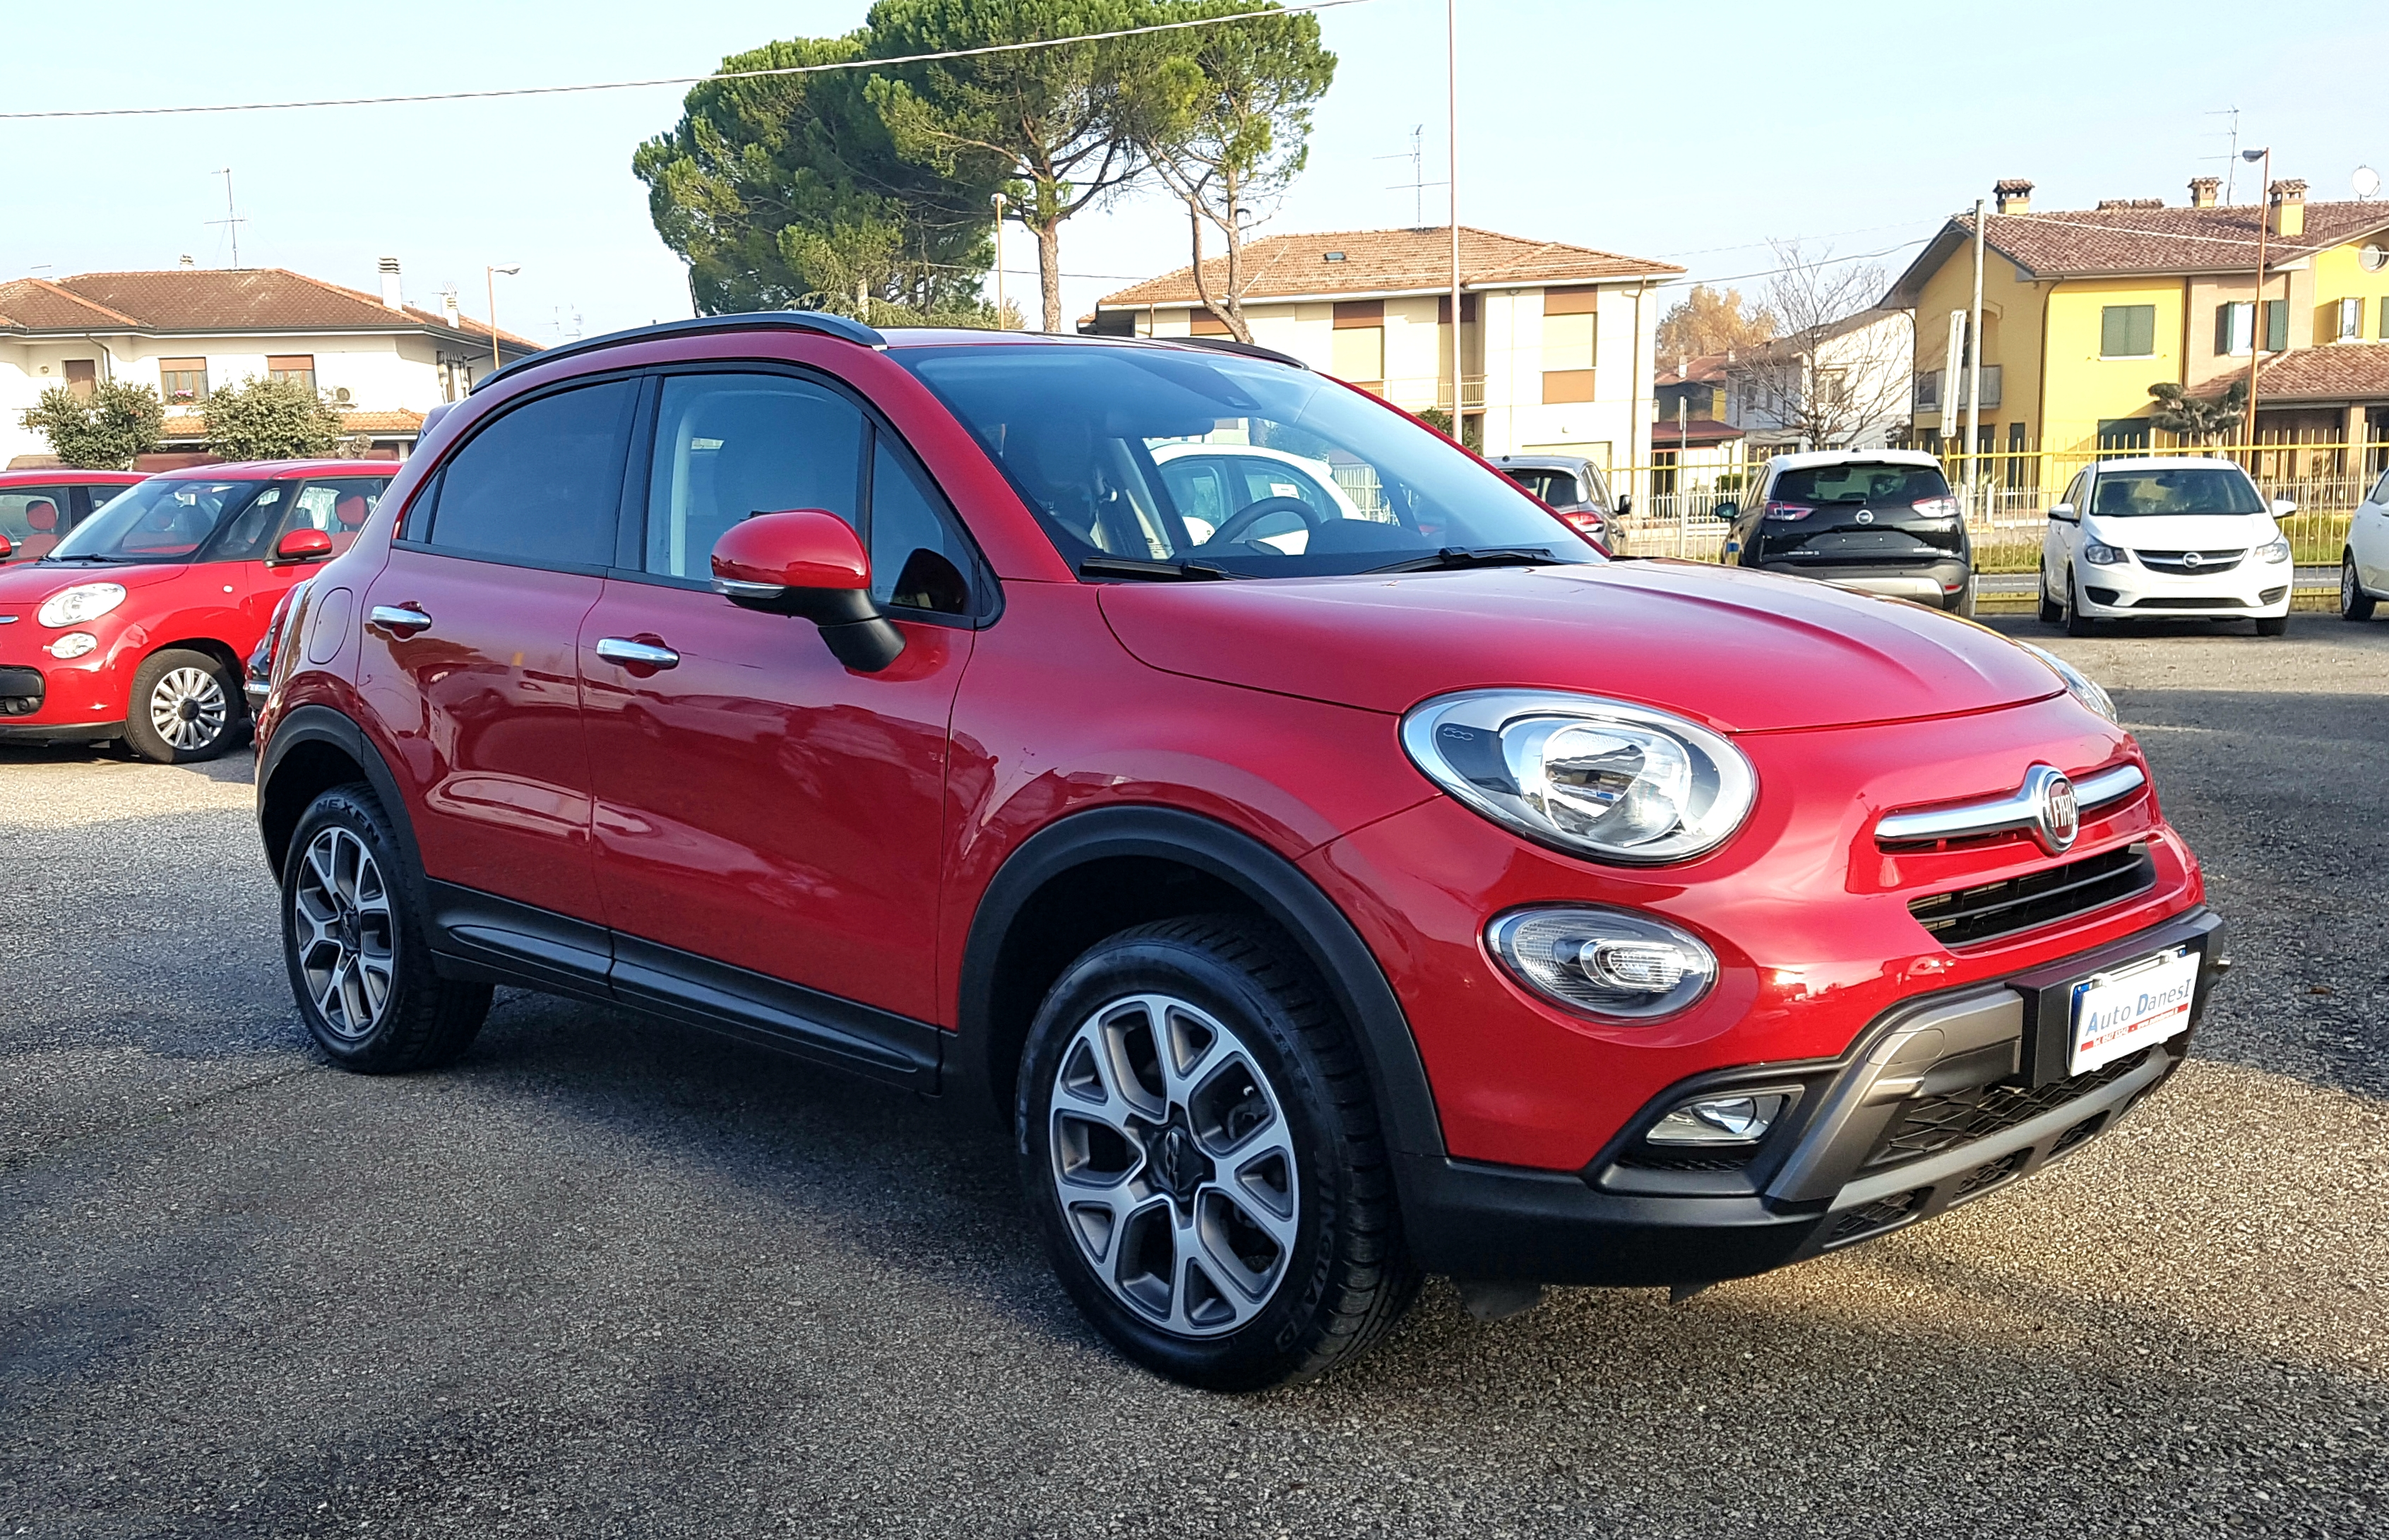 fiat 500x off road look 2 0 mjt 140cv 4x4 cross autodanesi vendita auto nuove e usate longiano. Black Bedroom Furniture Sets. Home Design Ideas